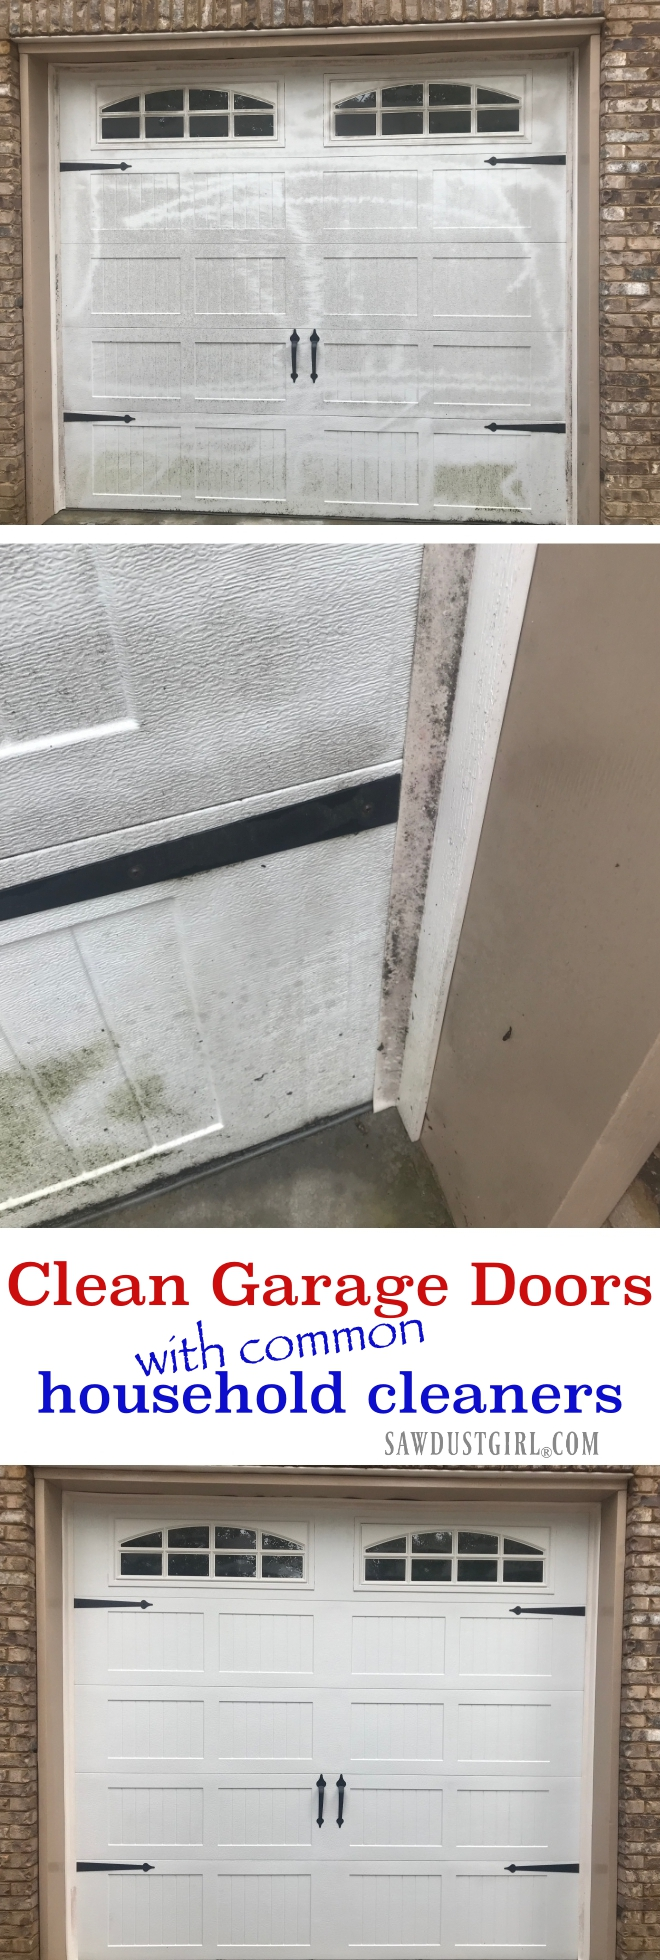 how to clean garage doors with common household cleaners